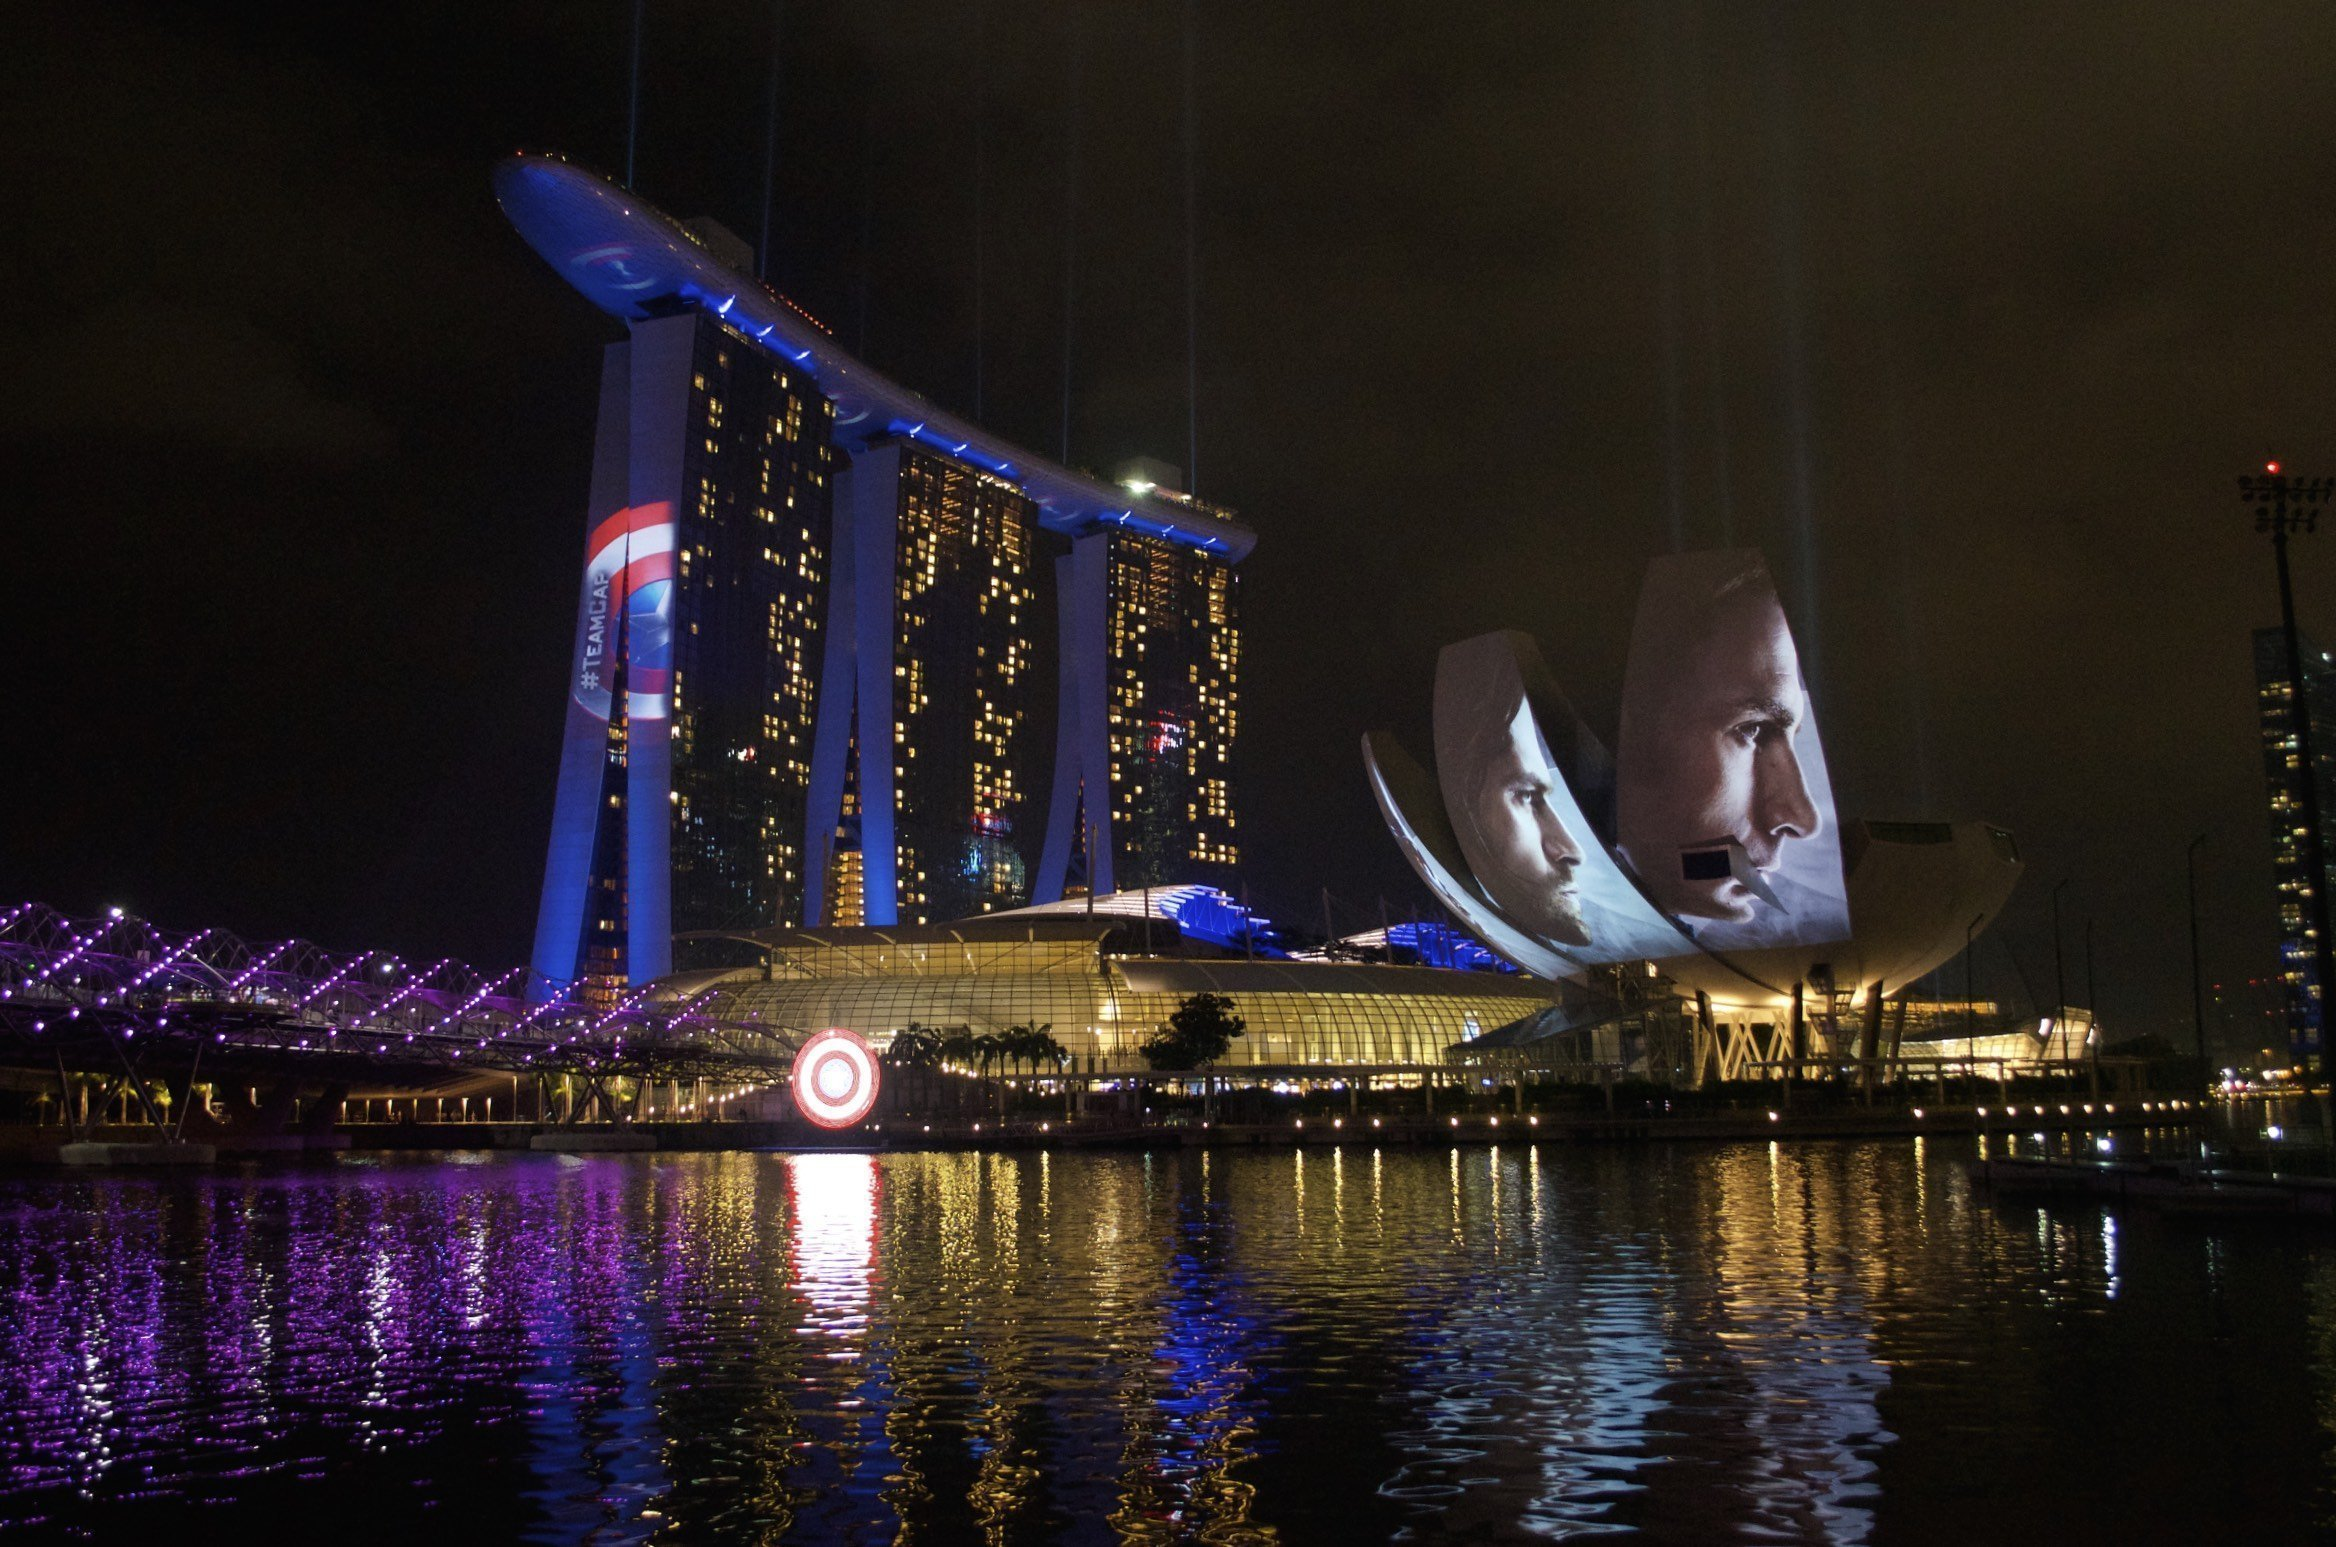 Marina Bay Sands, Science Museum und Helix Bridge bei Nacht